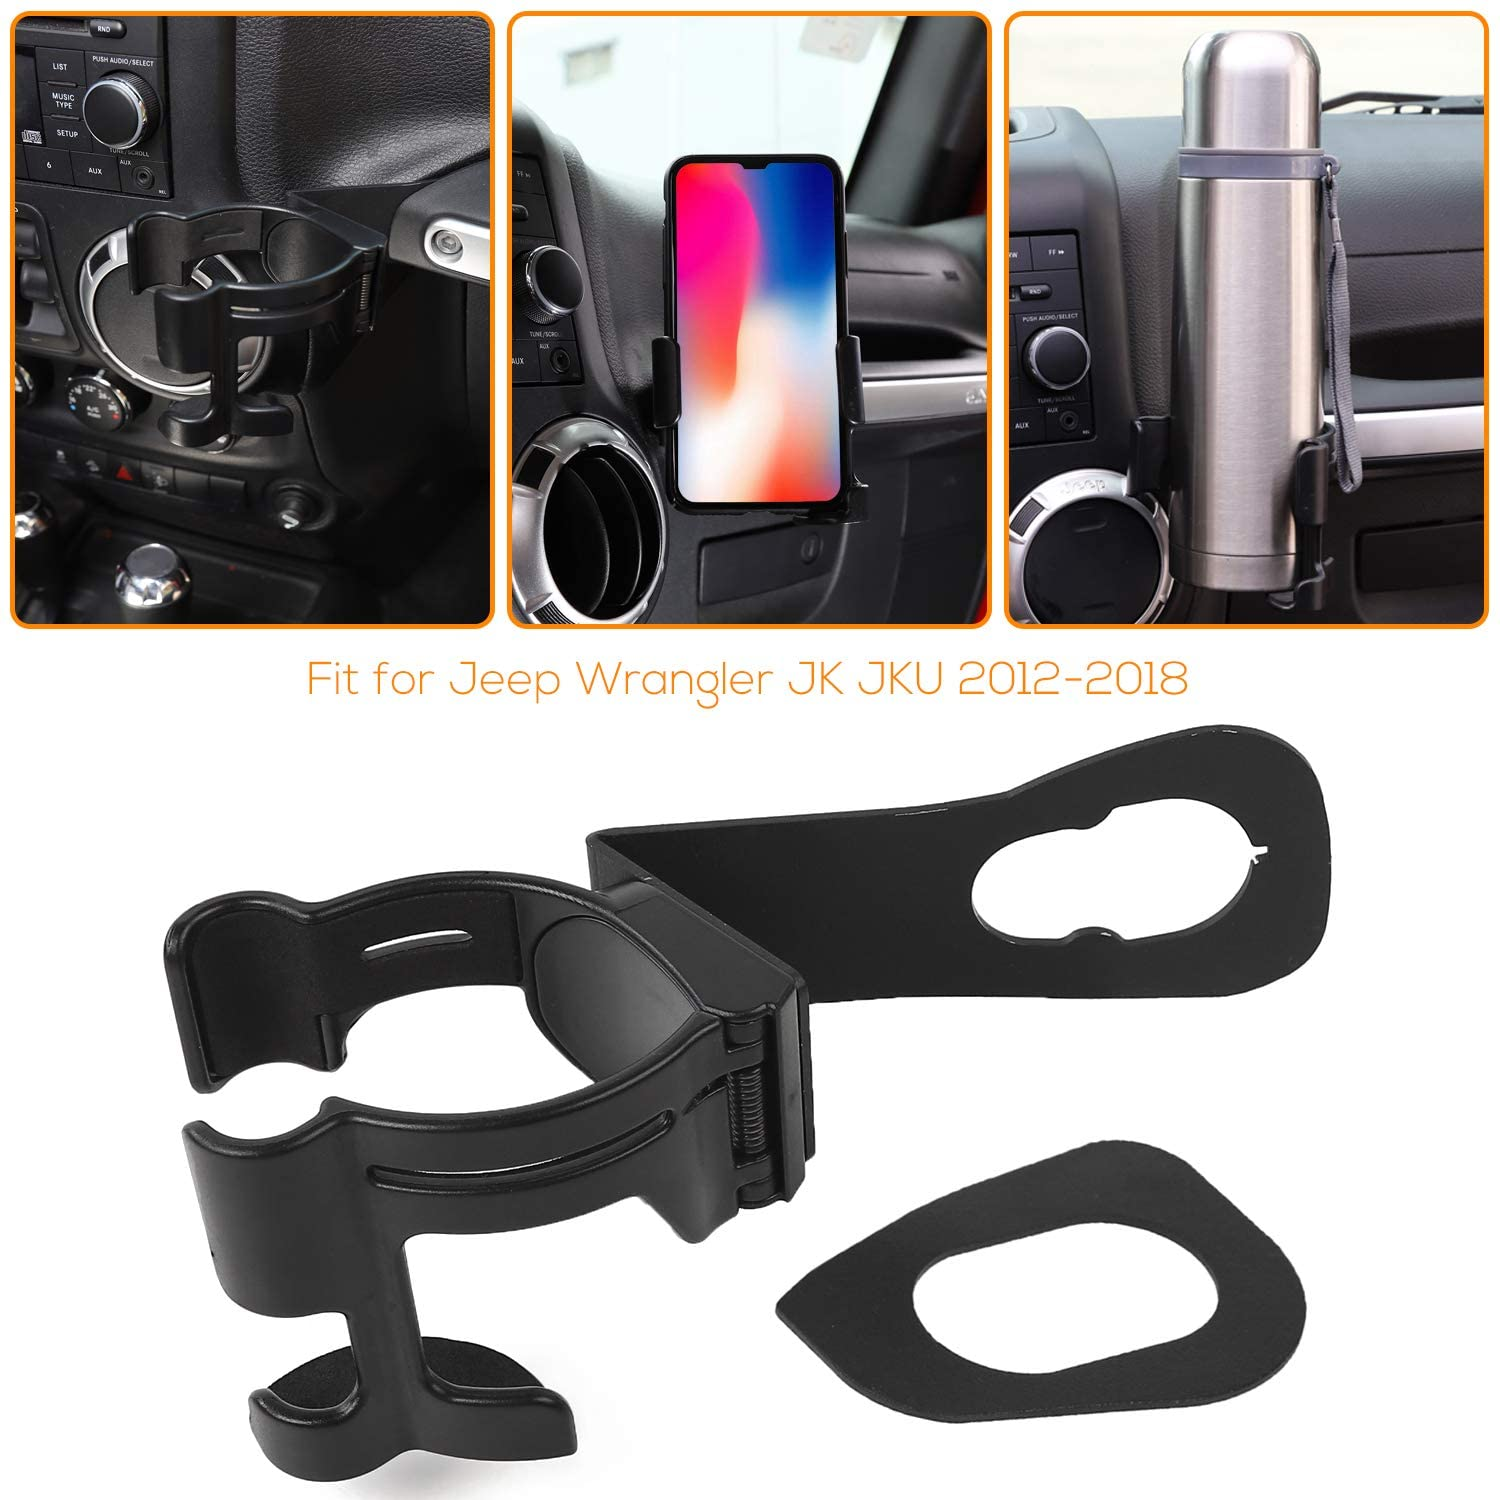 2 in 1 JK Drink Cup Phone Holder, Bolt-on Stand Bracket Holder for 2012-2018 Jeep Wrangler JK Rubicon Sahara Sport 2/4 Doors